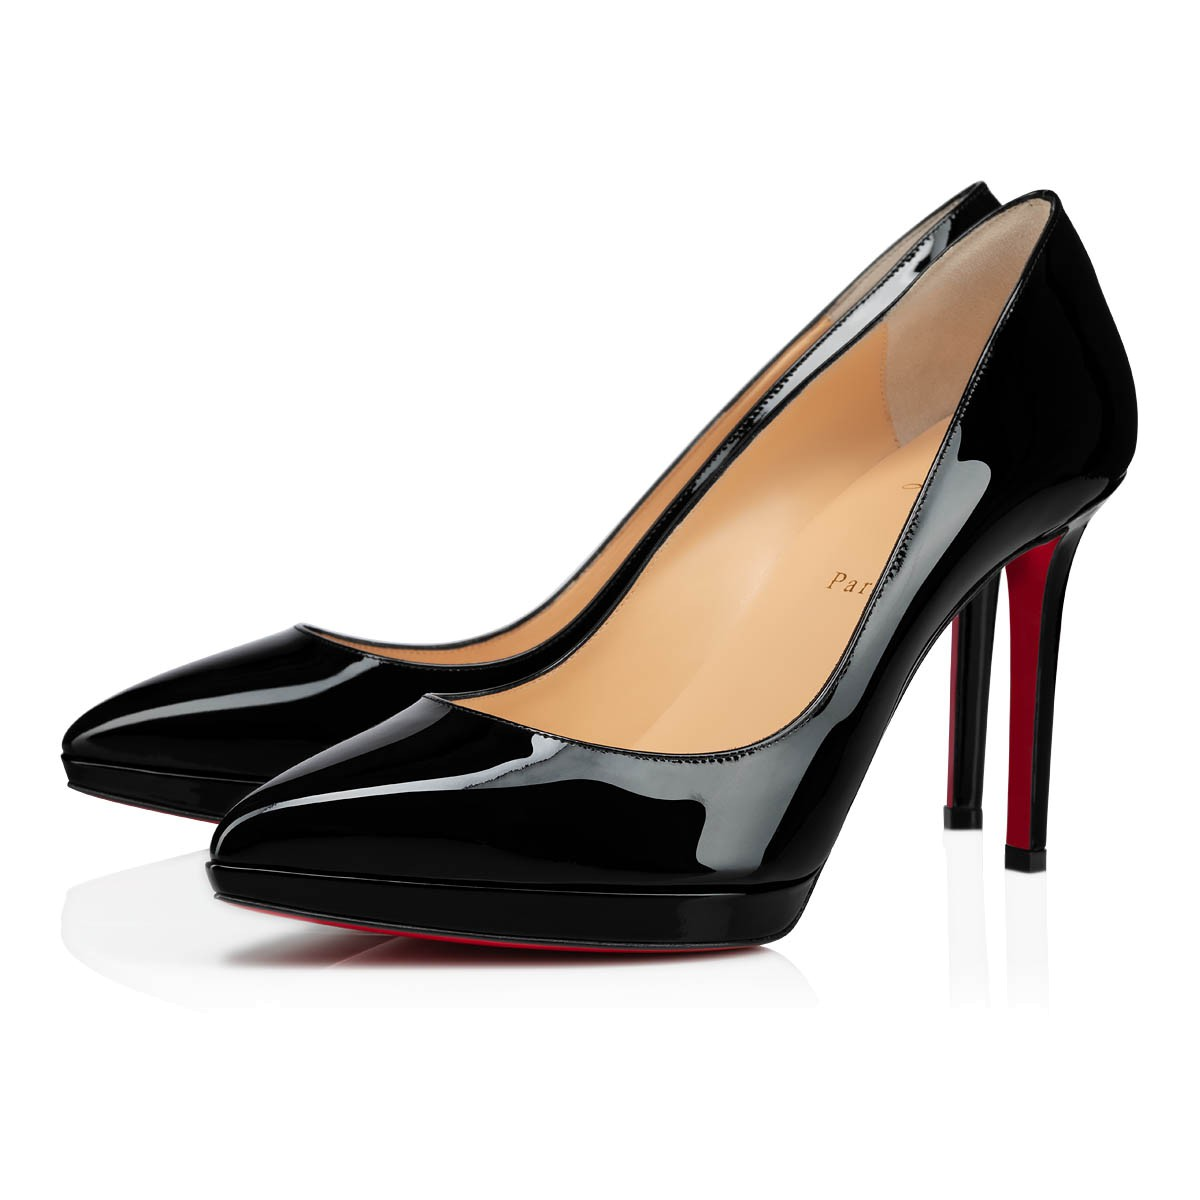 Shoes - Pigalle Plato - Christian Louboutin